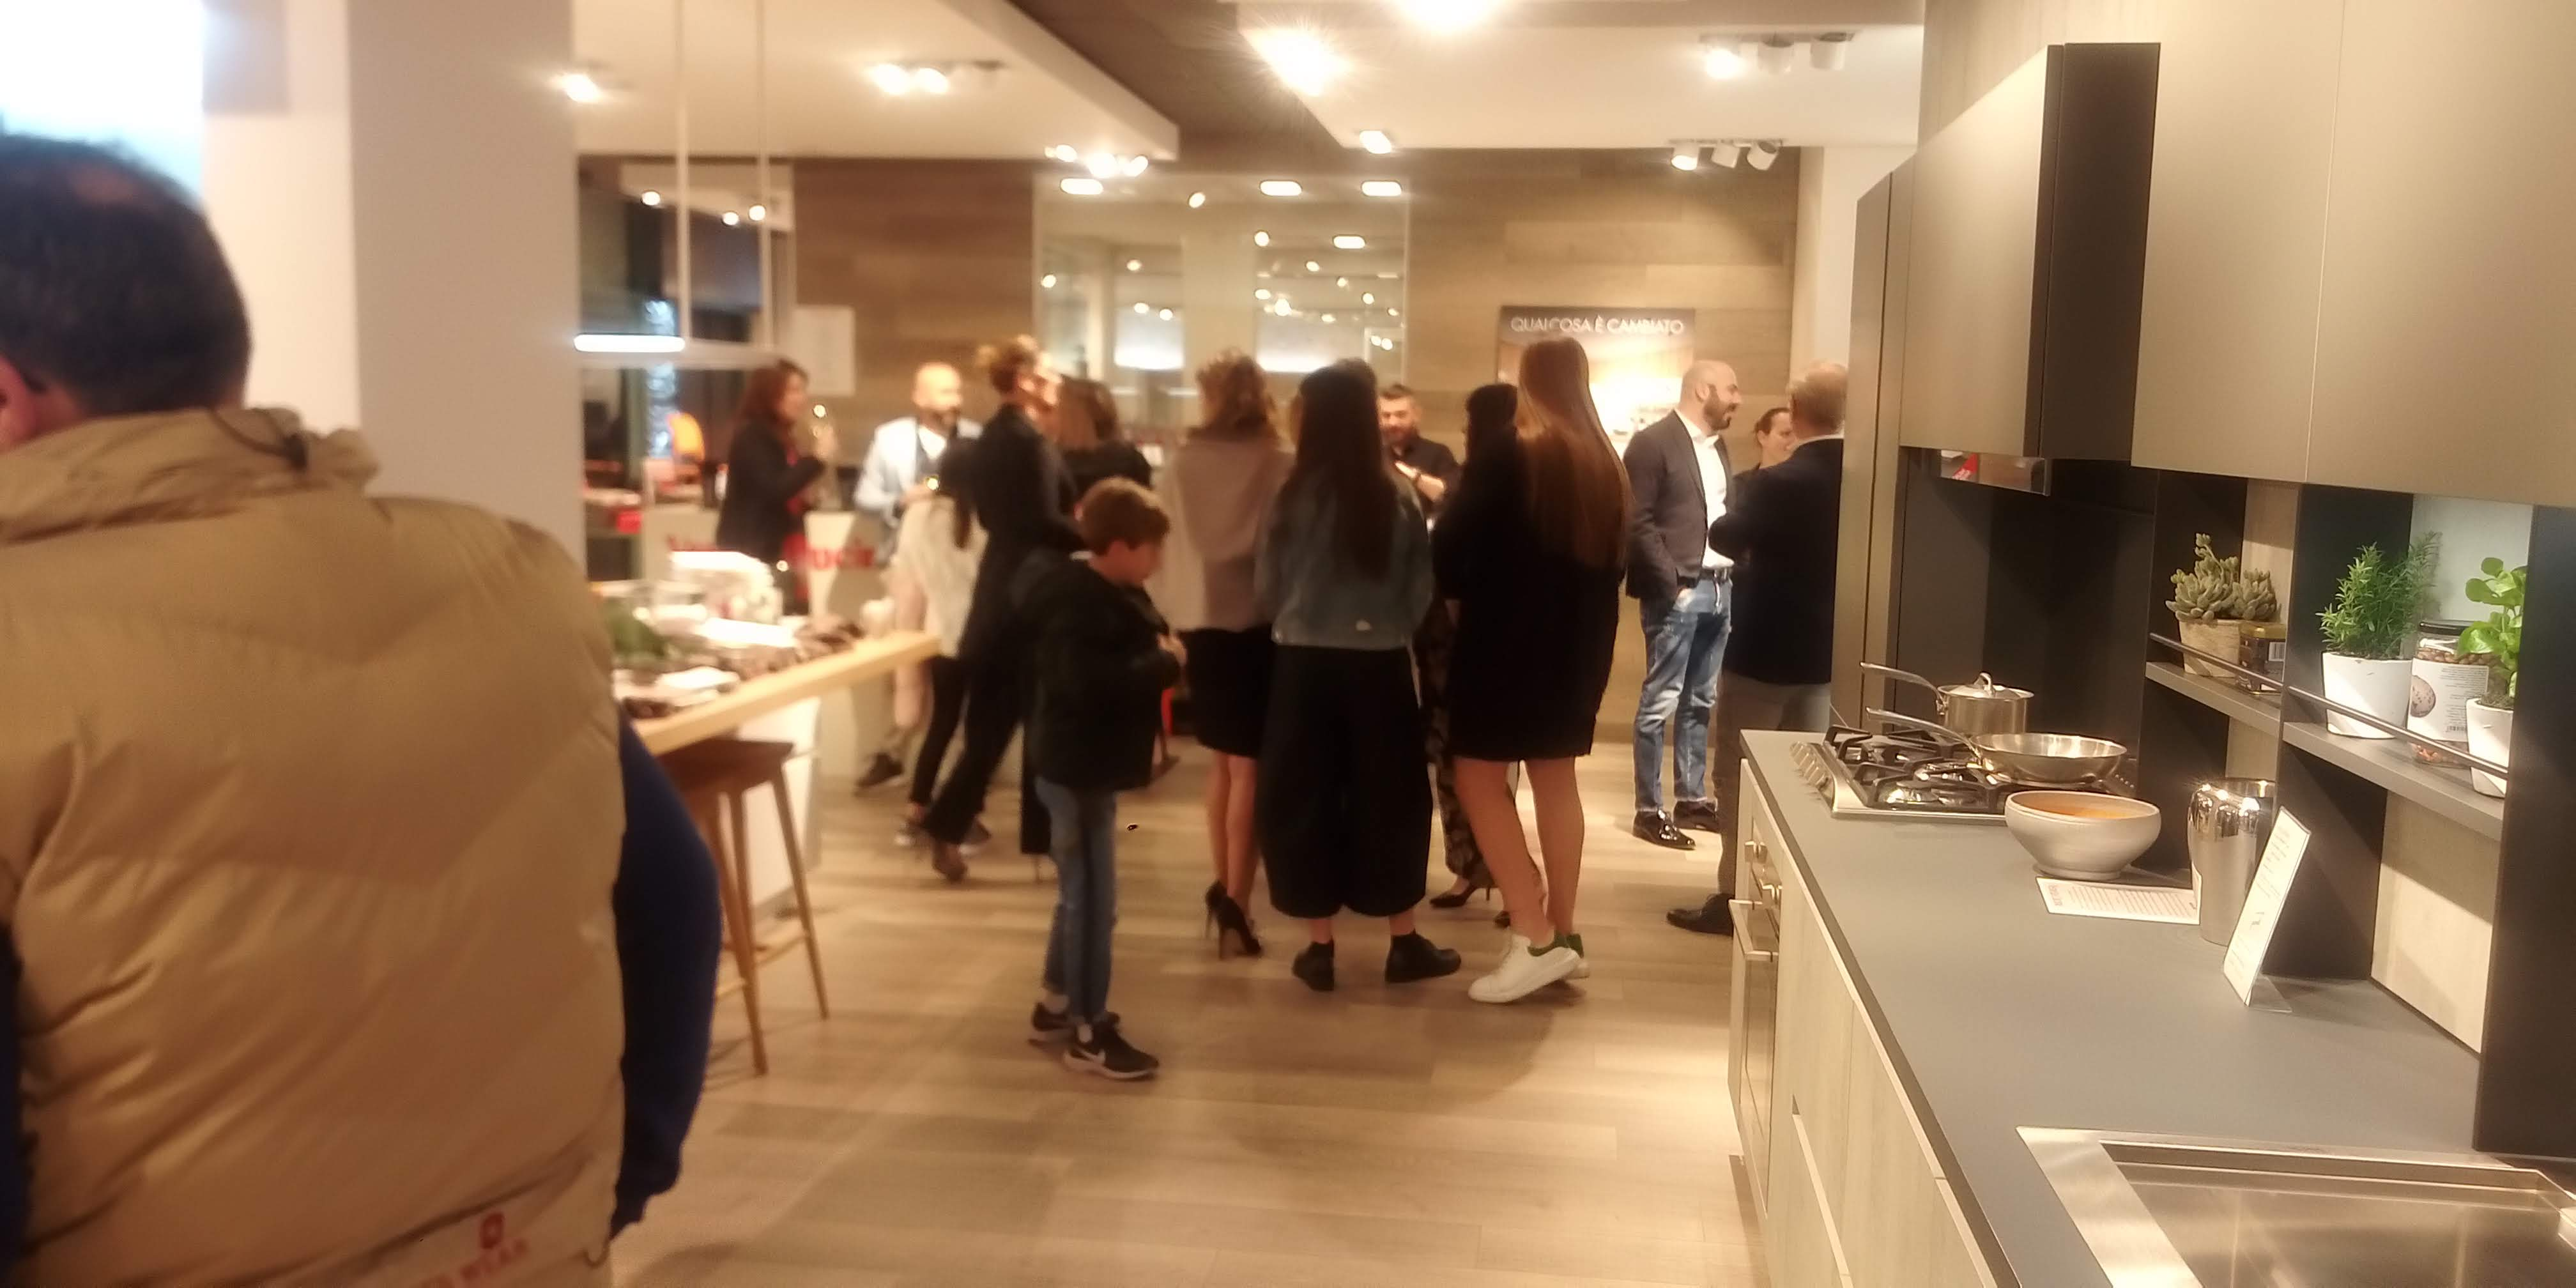 Private Party in Veneta Cucine Crema di Artabita srl